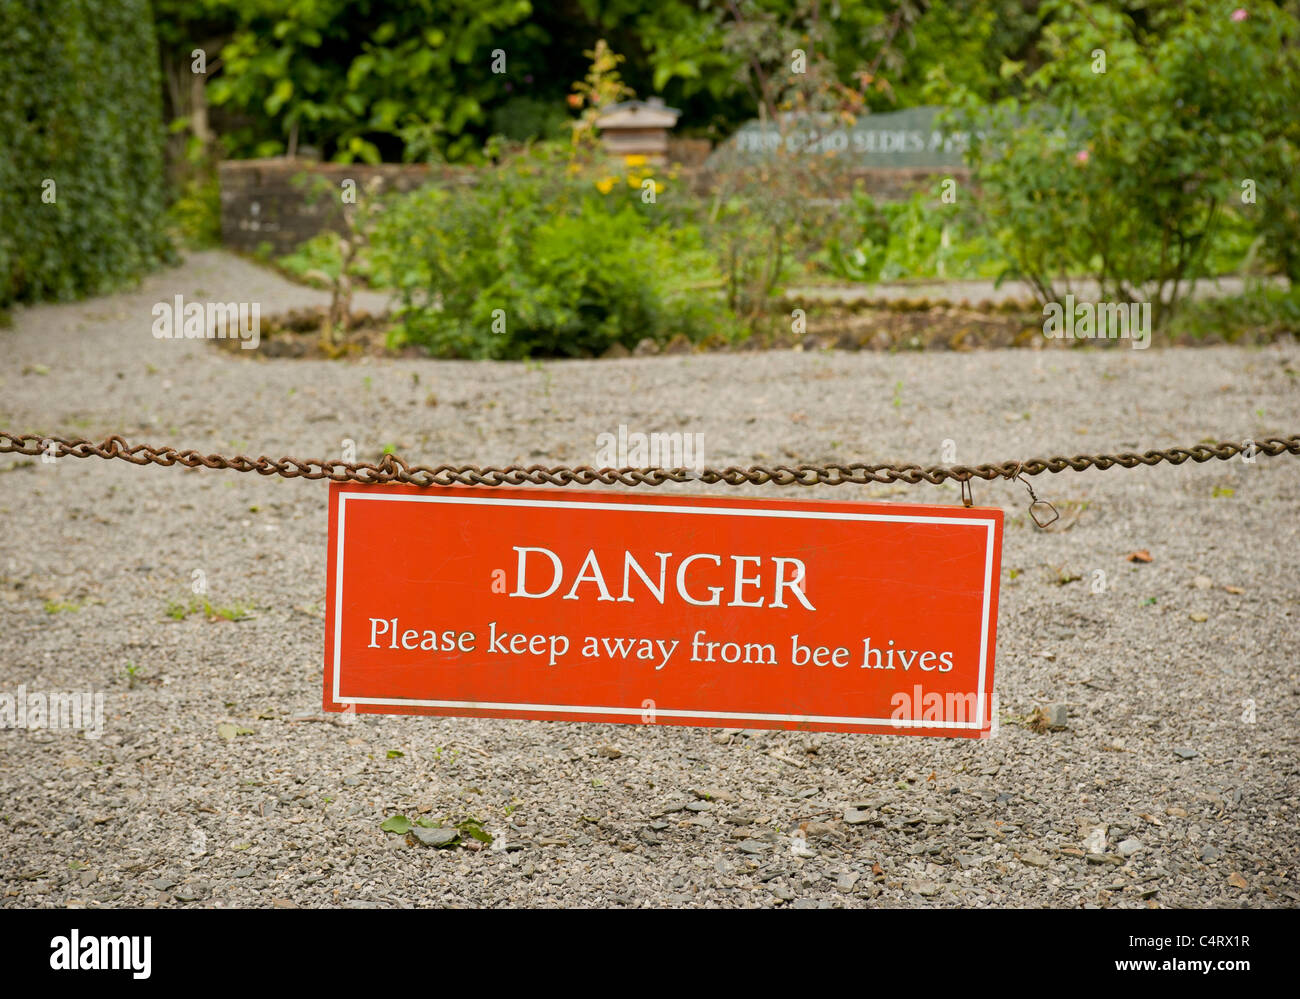 Danger warning sign. Please keep away from bee hives. - Stock Image